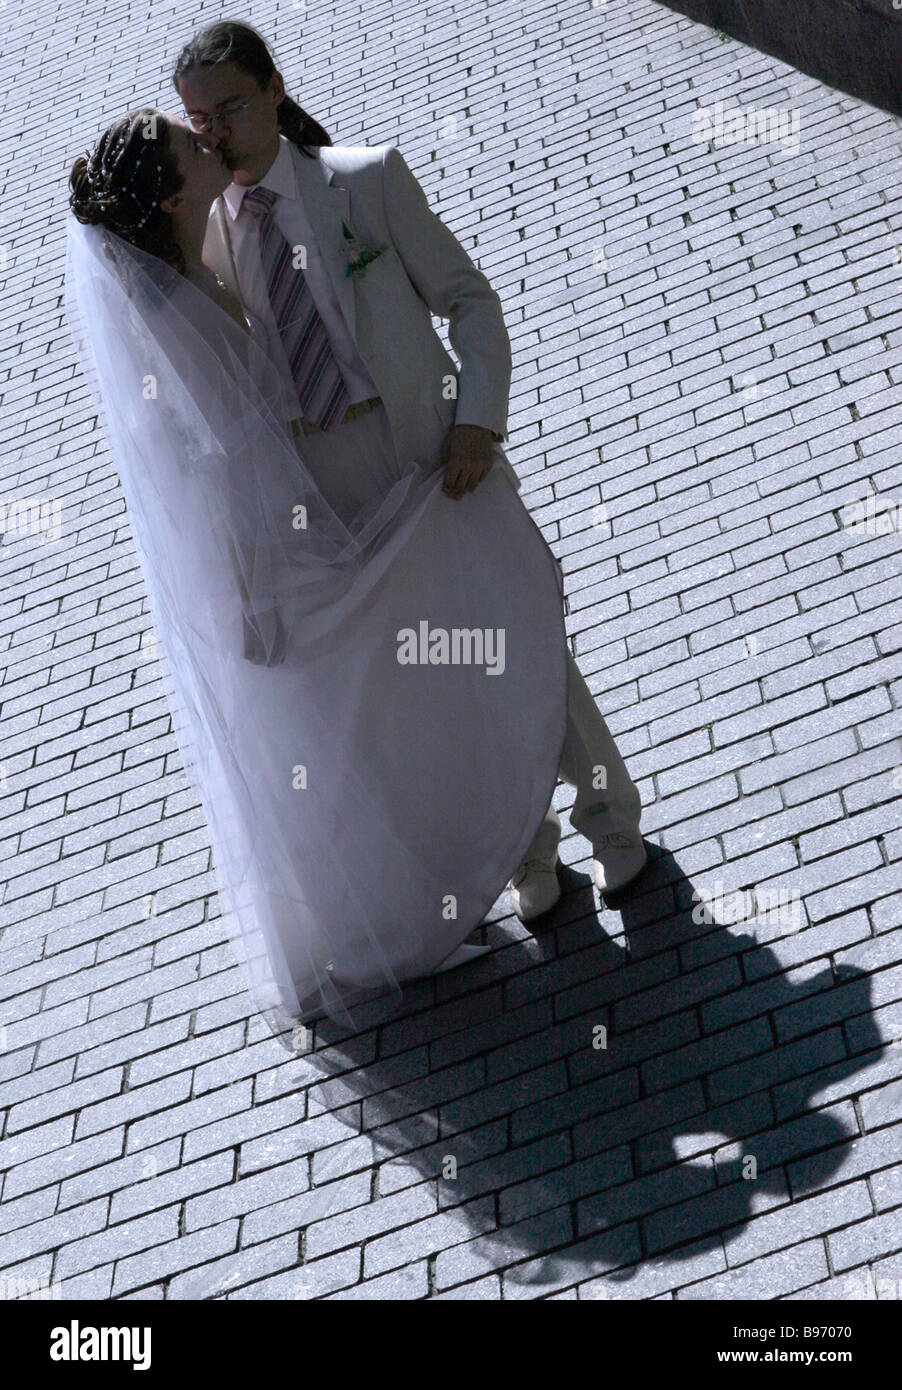 People deem July 7 2007 with its three 7 s an auspicious day for a wedding - Stock Image